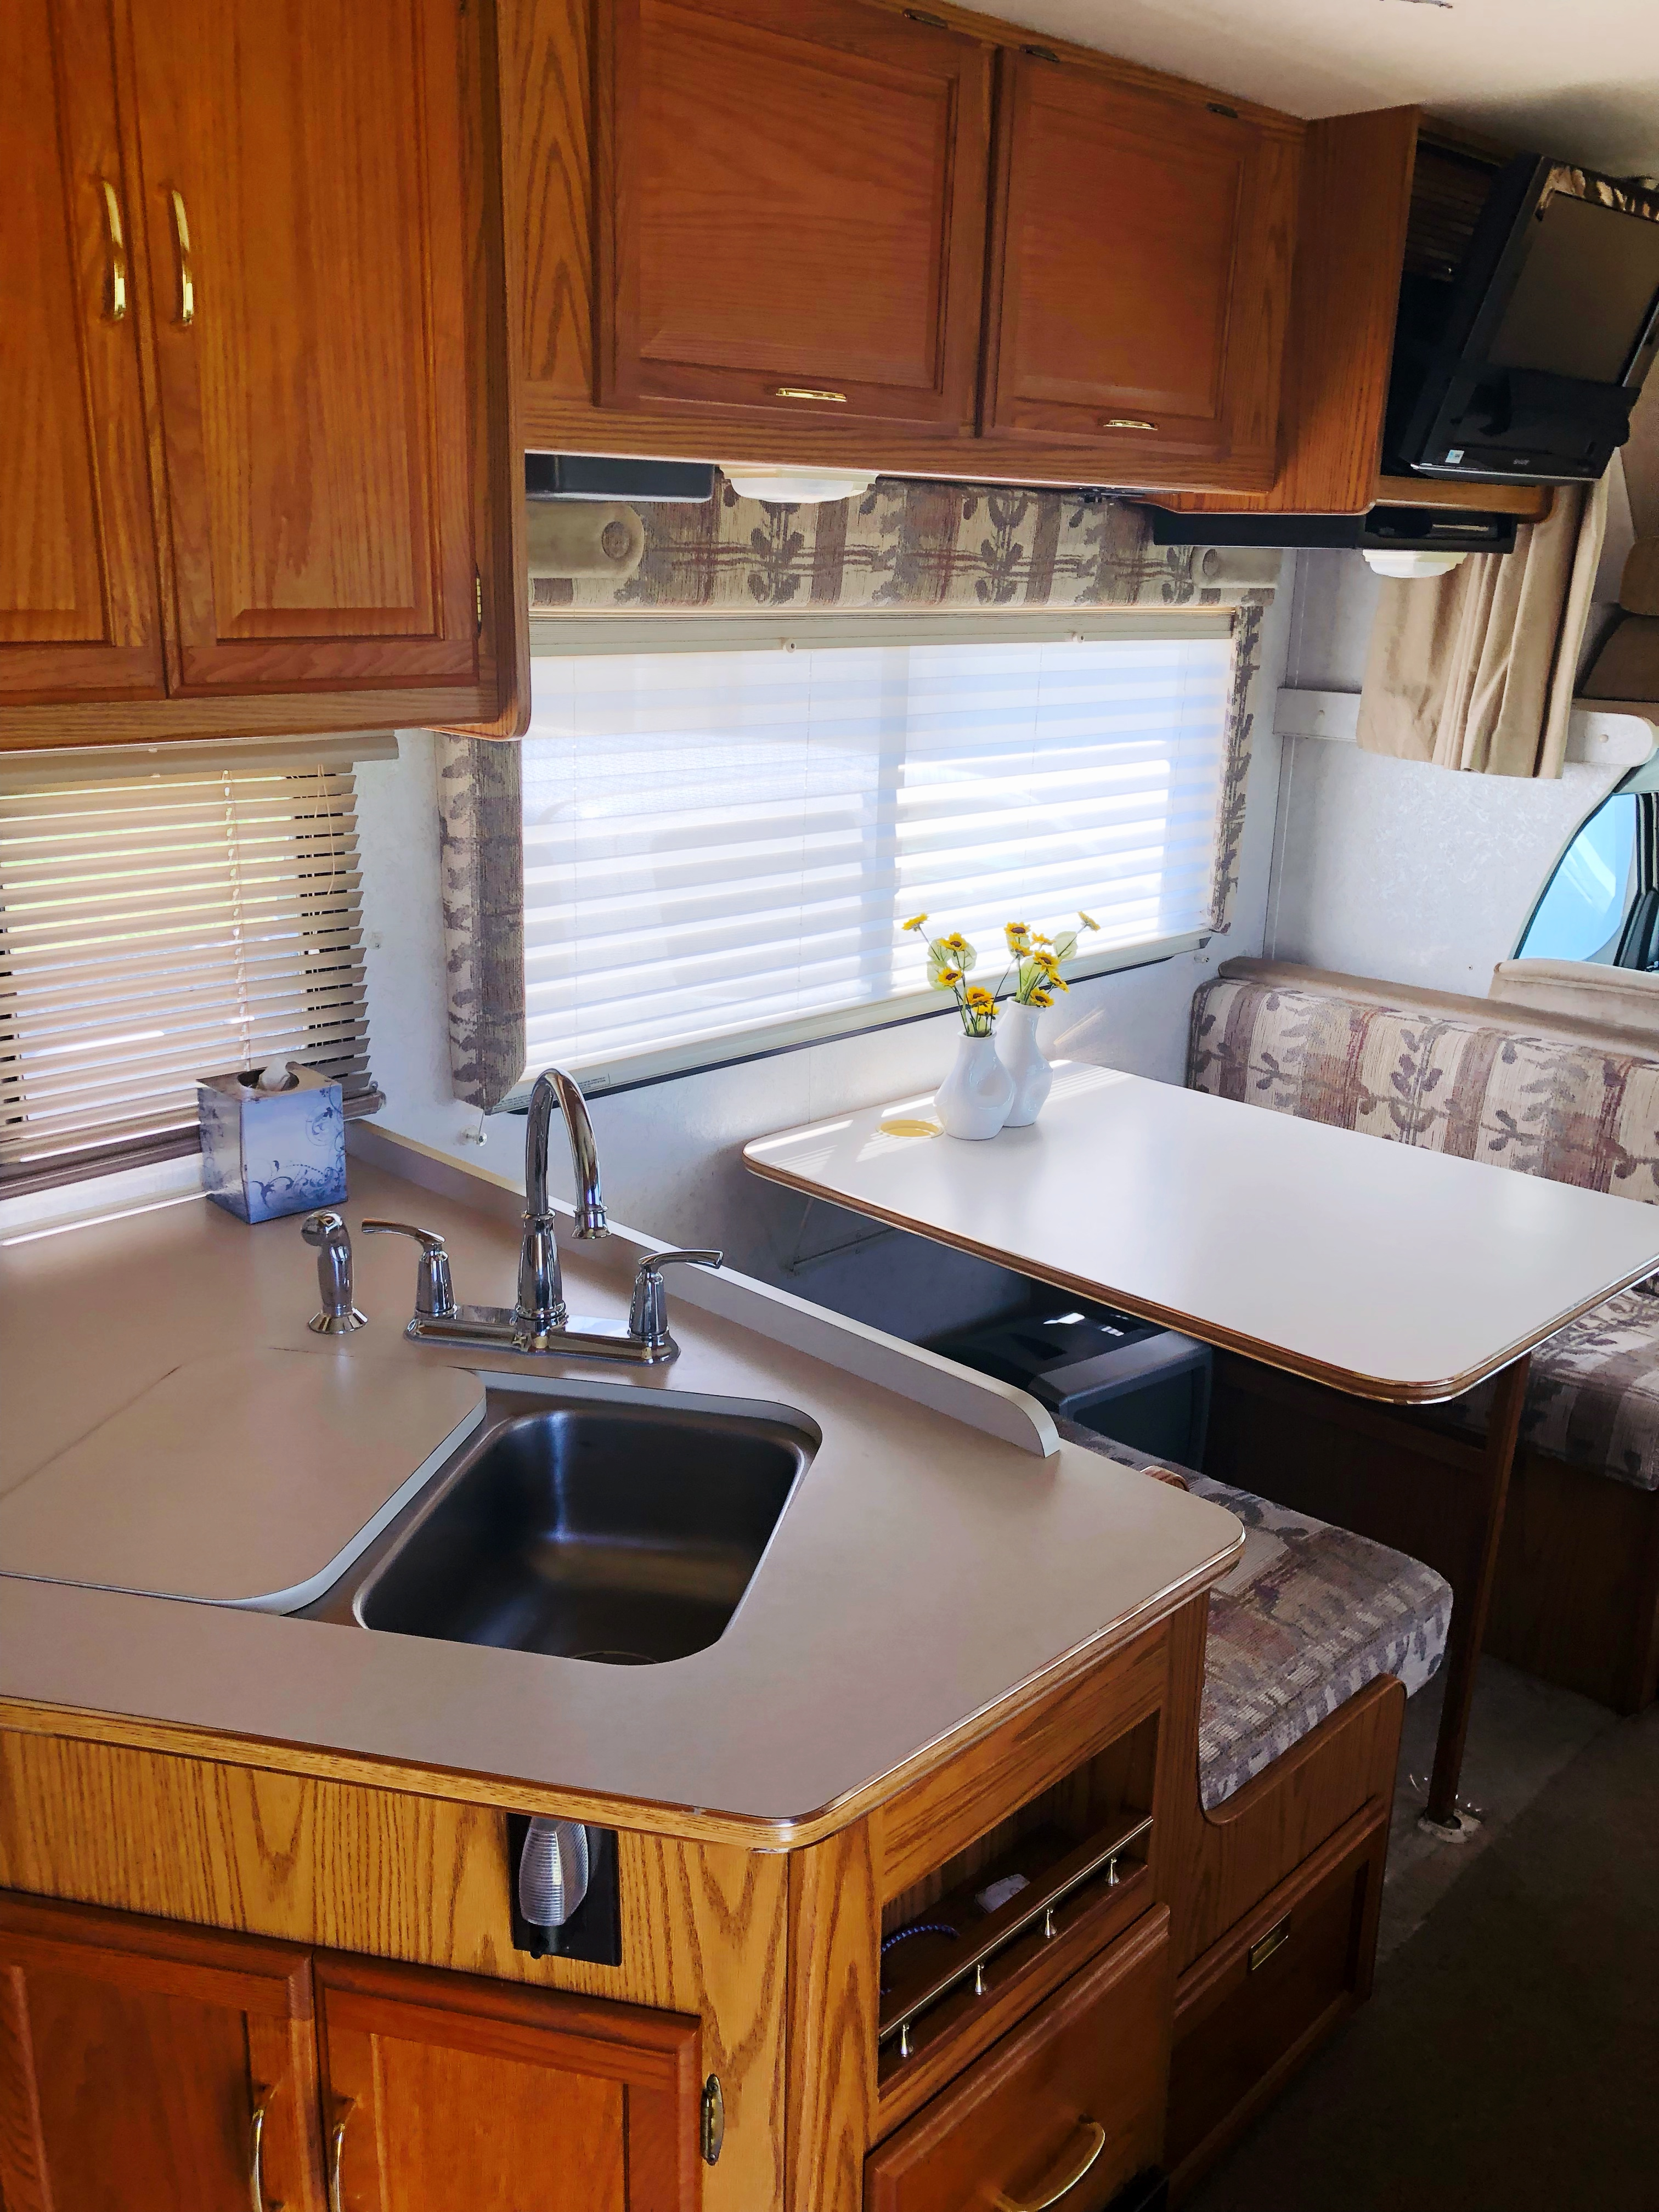 Double sided stainless steal sink with a cutting board. Dinette makes into a bed for two children or one adult.  Faucet set is new. . Itasca Spirit 2000